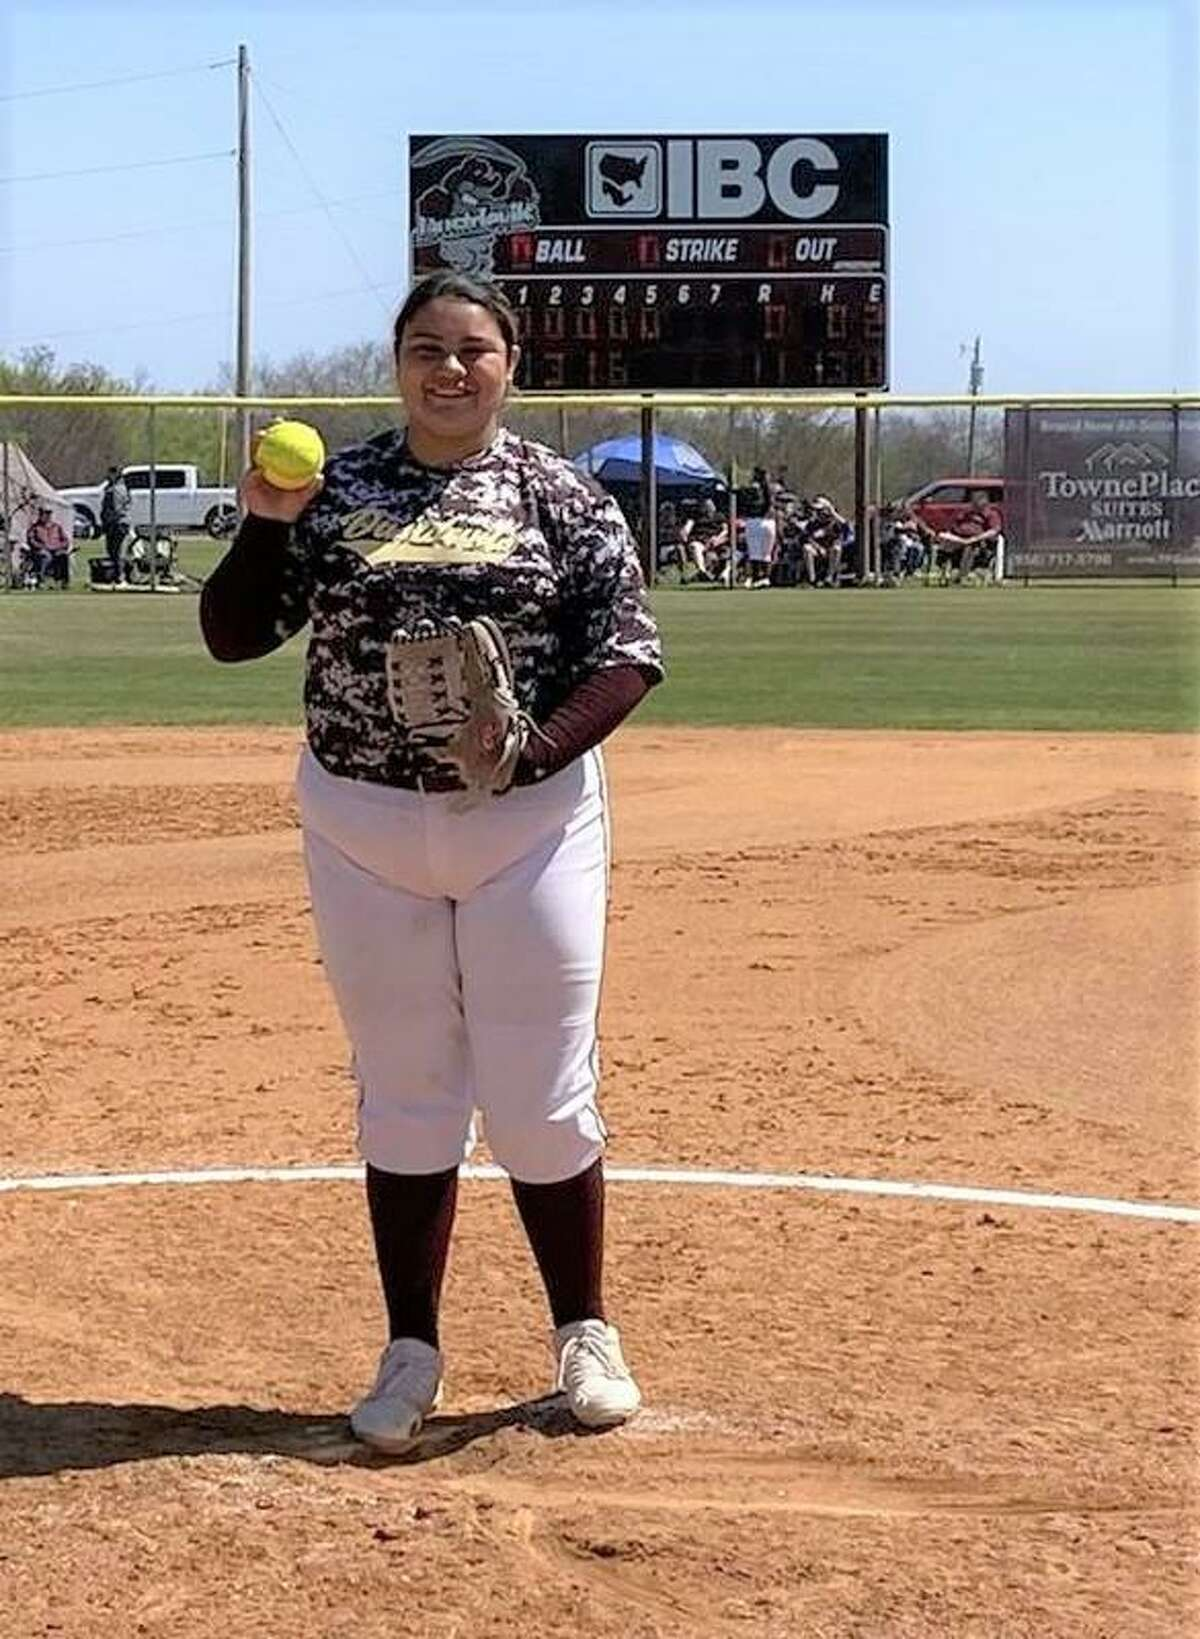 TAMIU's Erika Cortez recorded nine strikeouts Sunday while completing the first perfect game in program history as the Dustdevils won 11-0 against Eastern New Mexico in five innings.